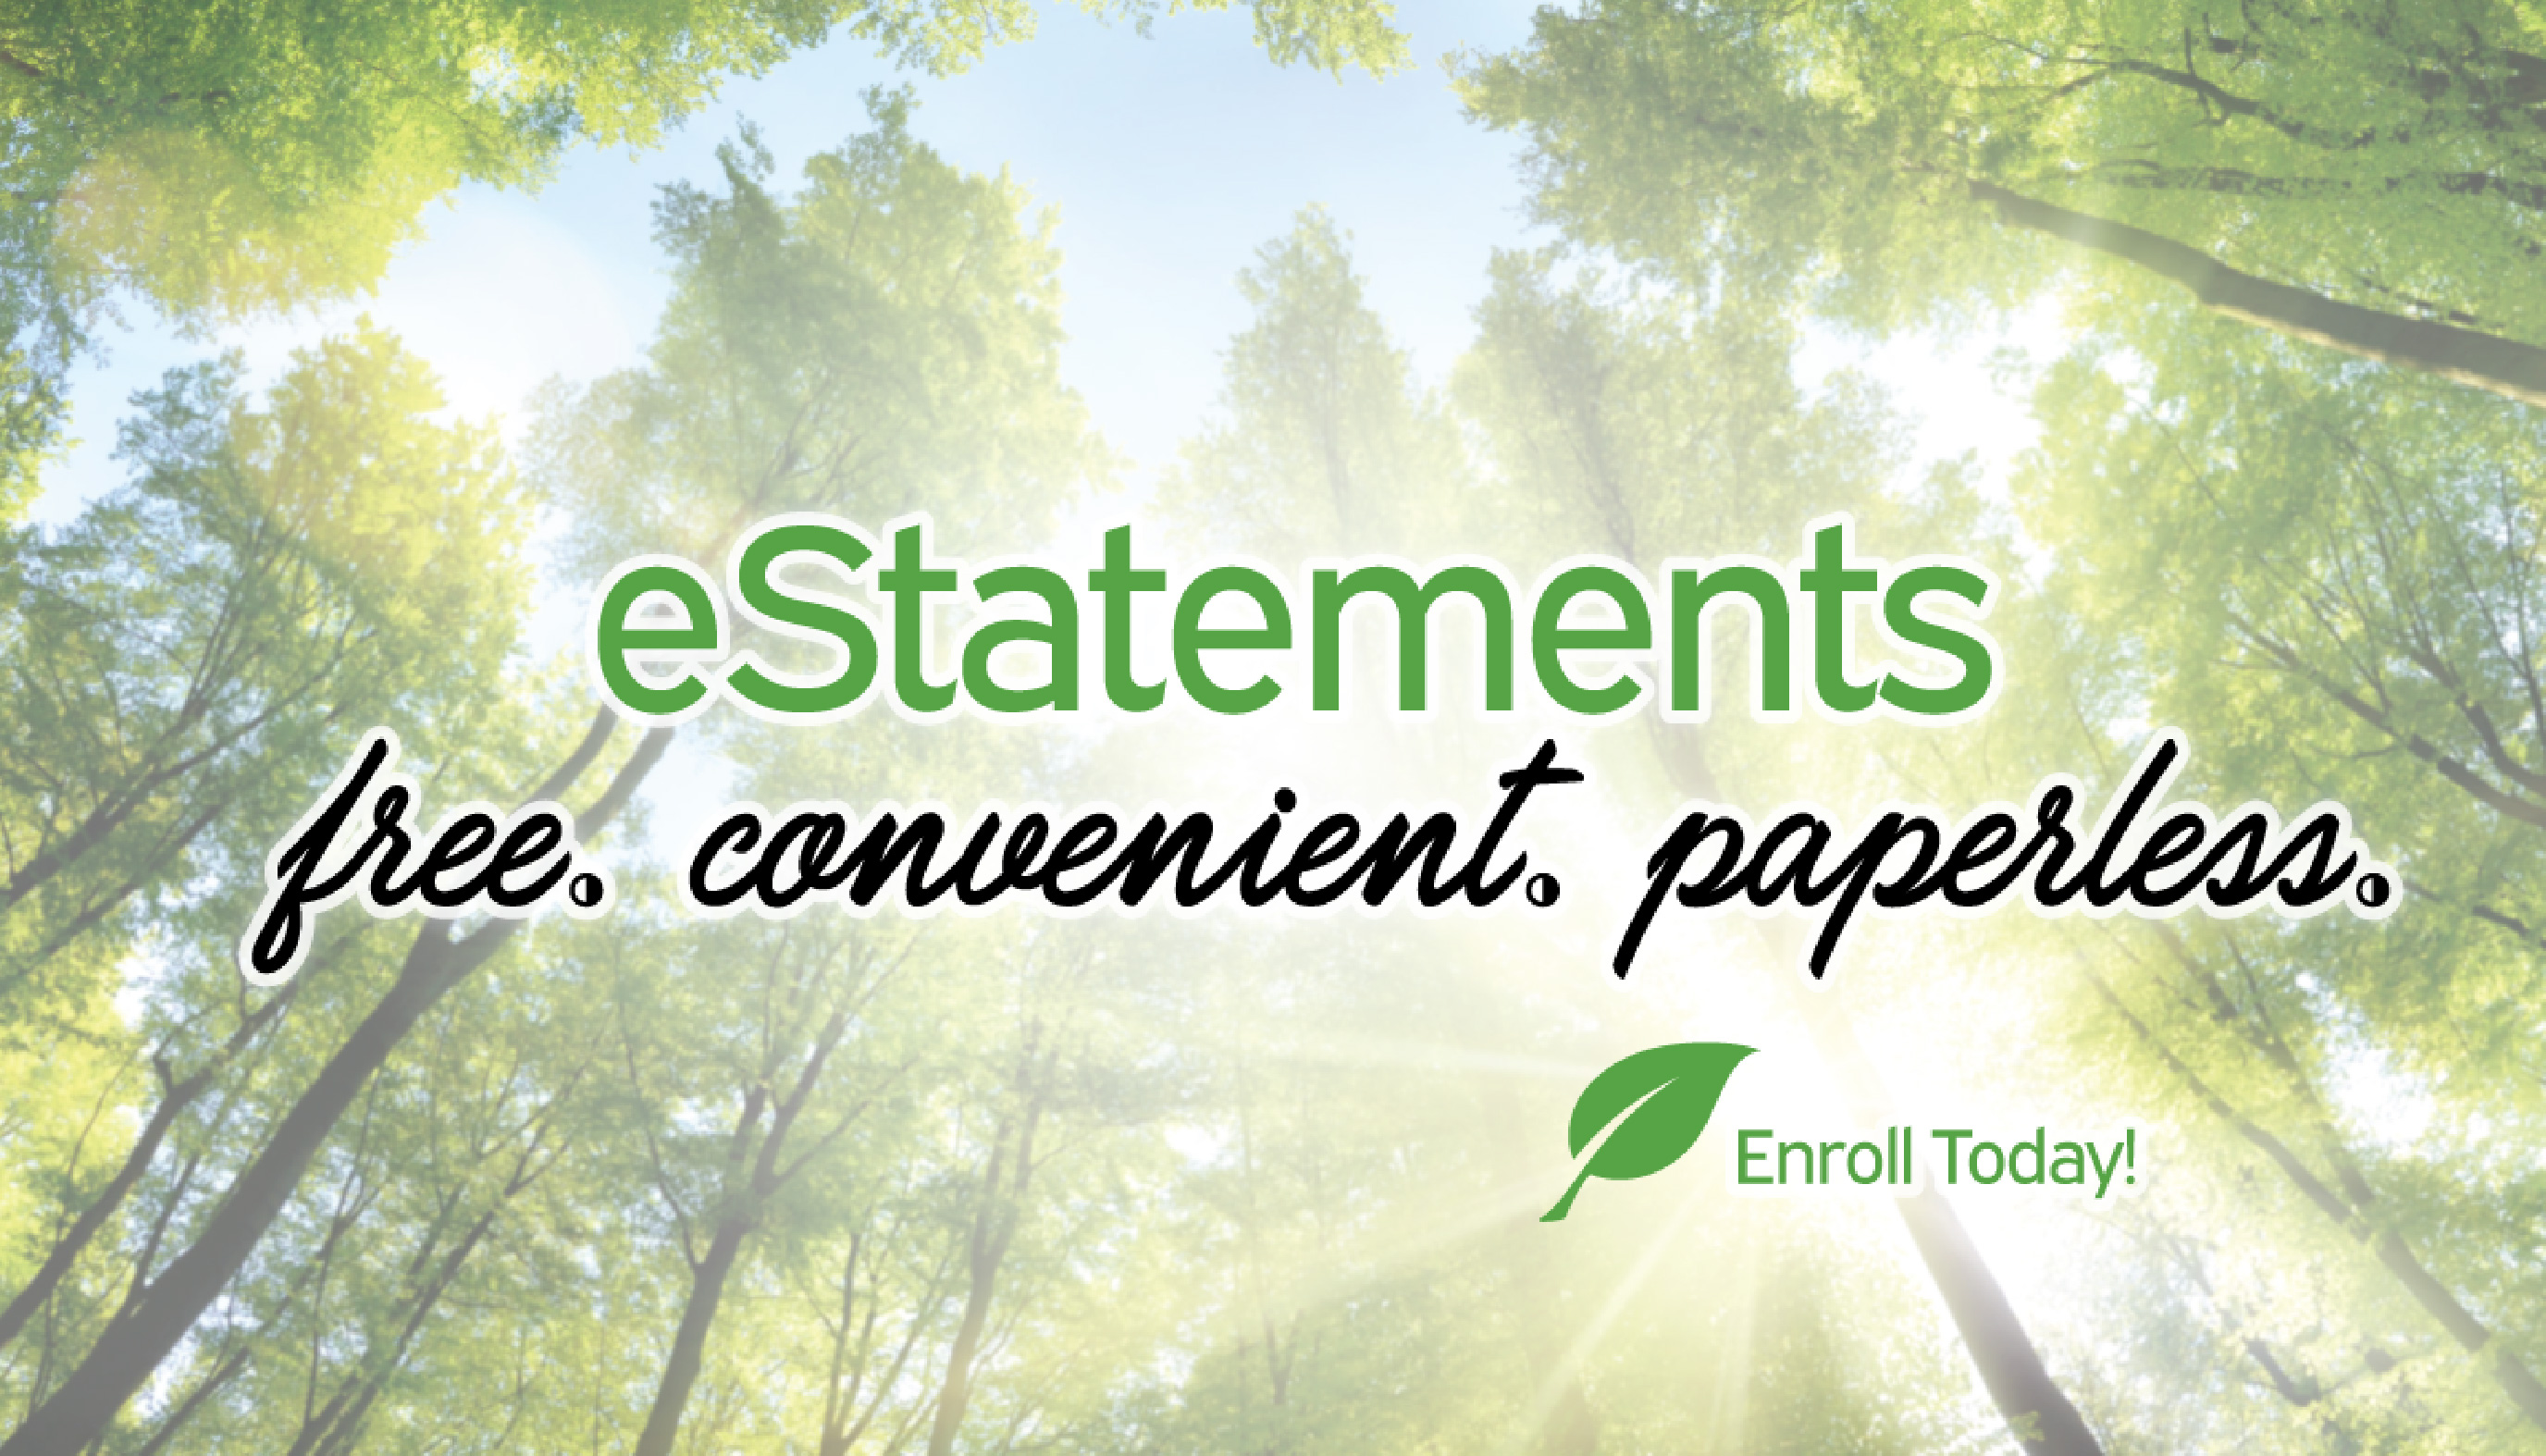 eStatements: Free, Convenient, Paperless. Enroll Today!